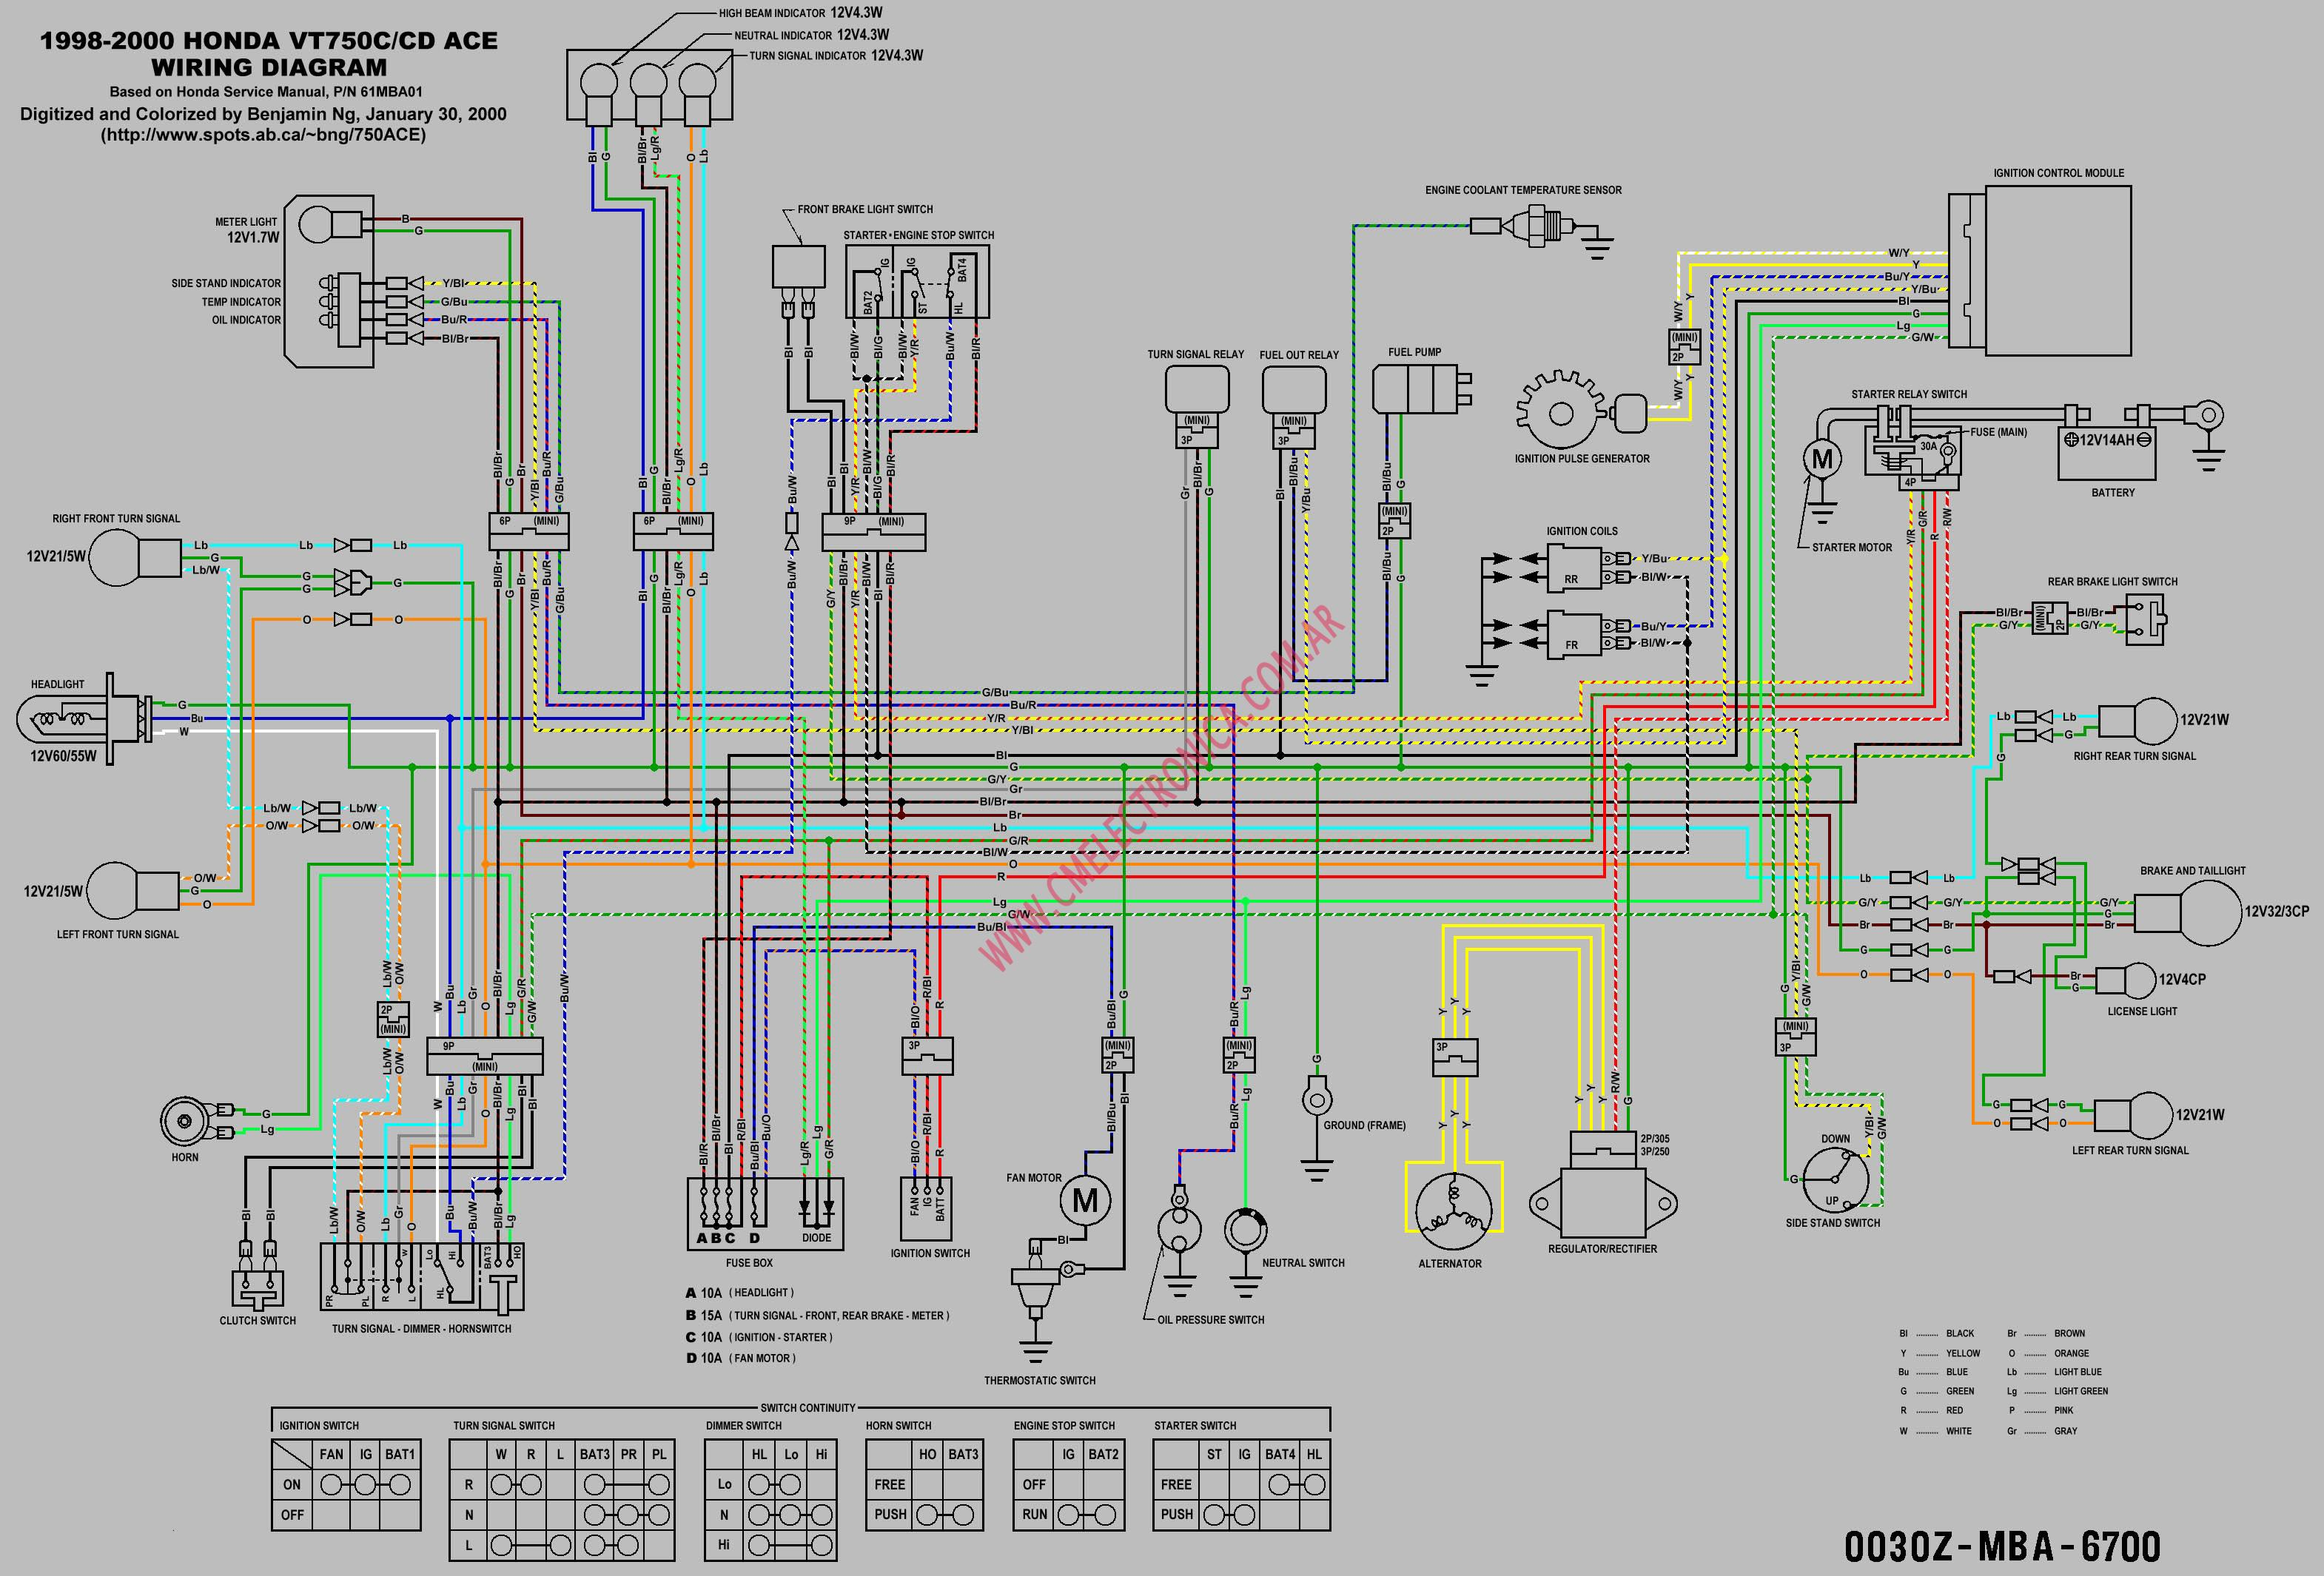 Honda Elite 50 Wiring Diagram on honda fourtrax 300 carburetor diagram